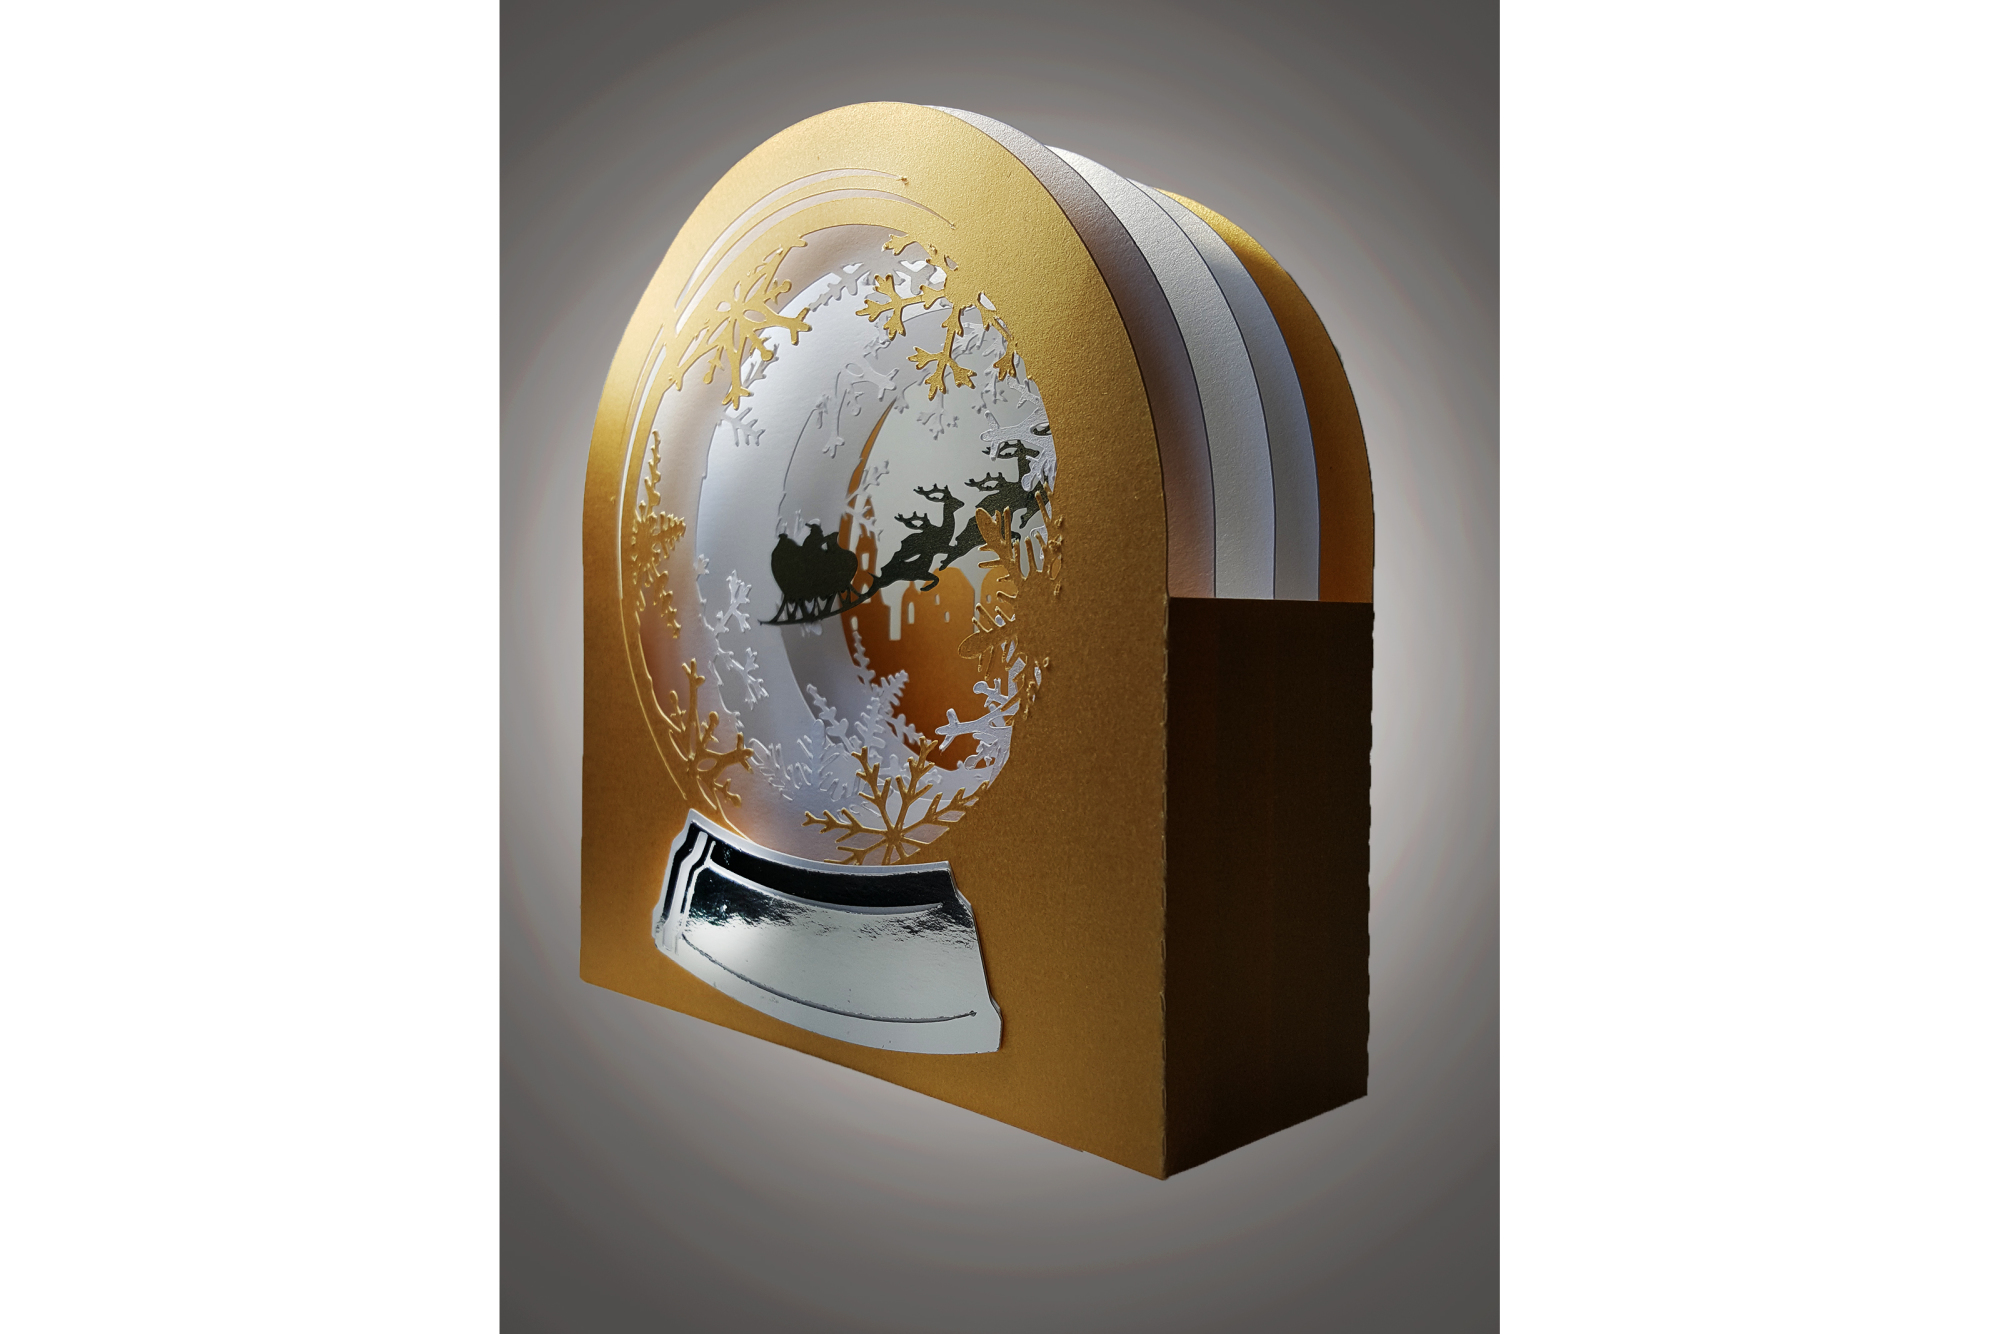 3D Snow Globe Snowy Village greetings card example image 2